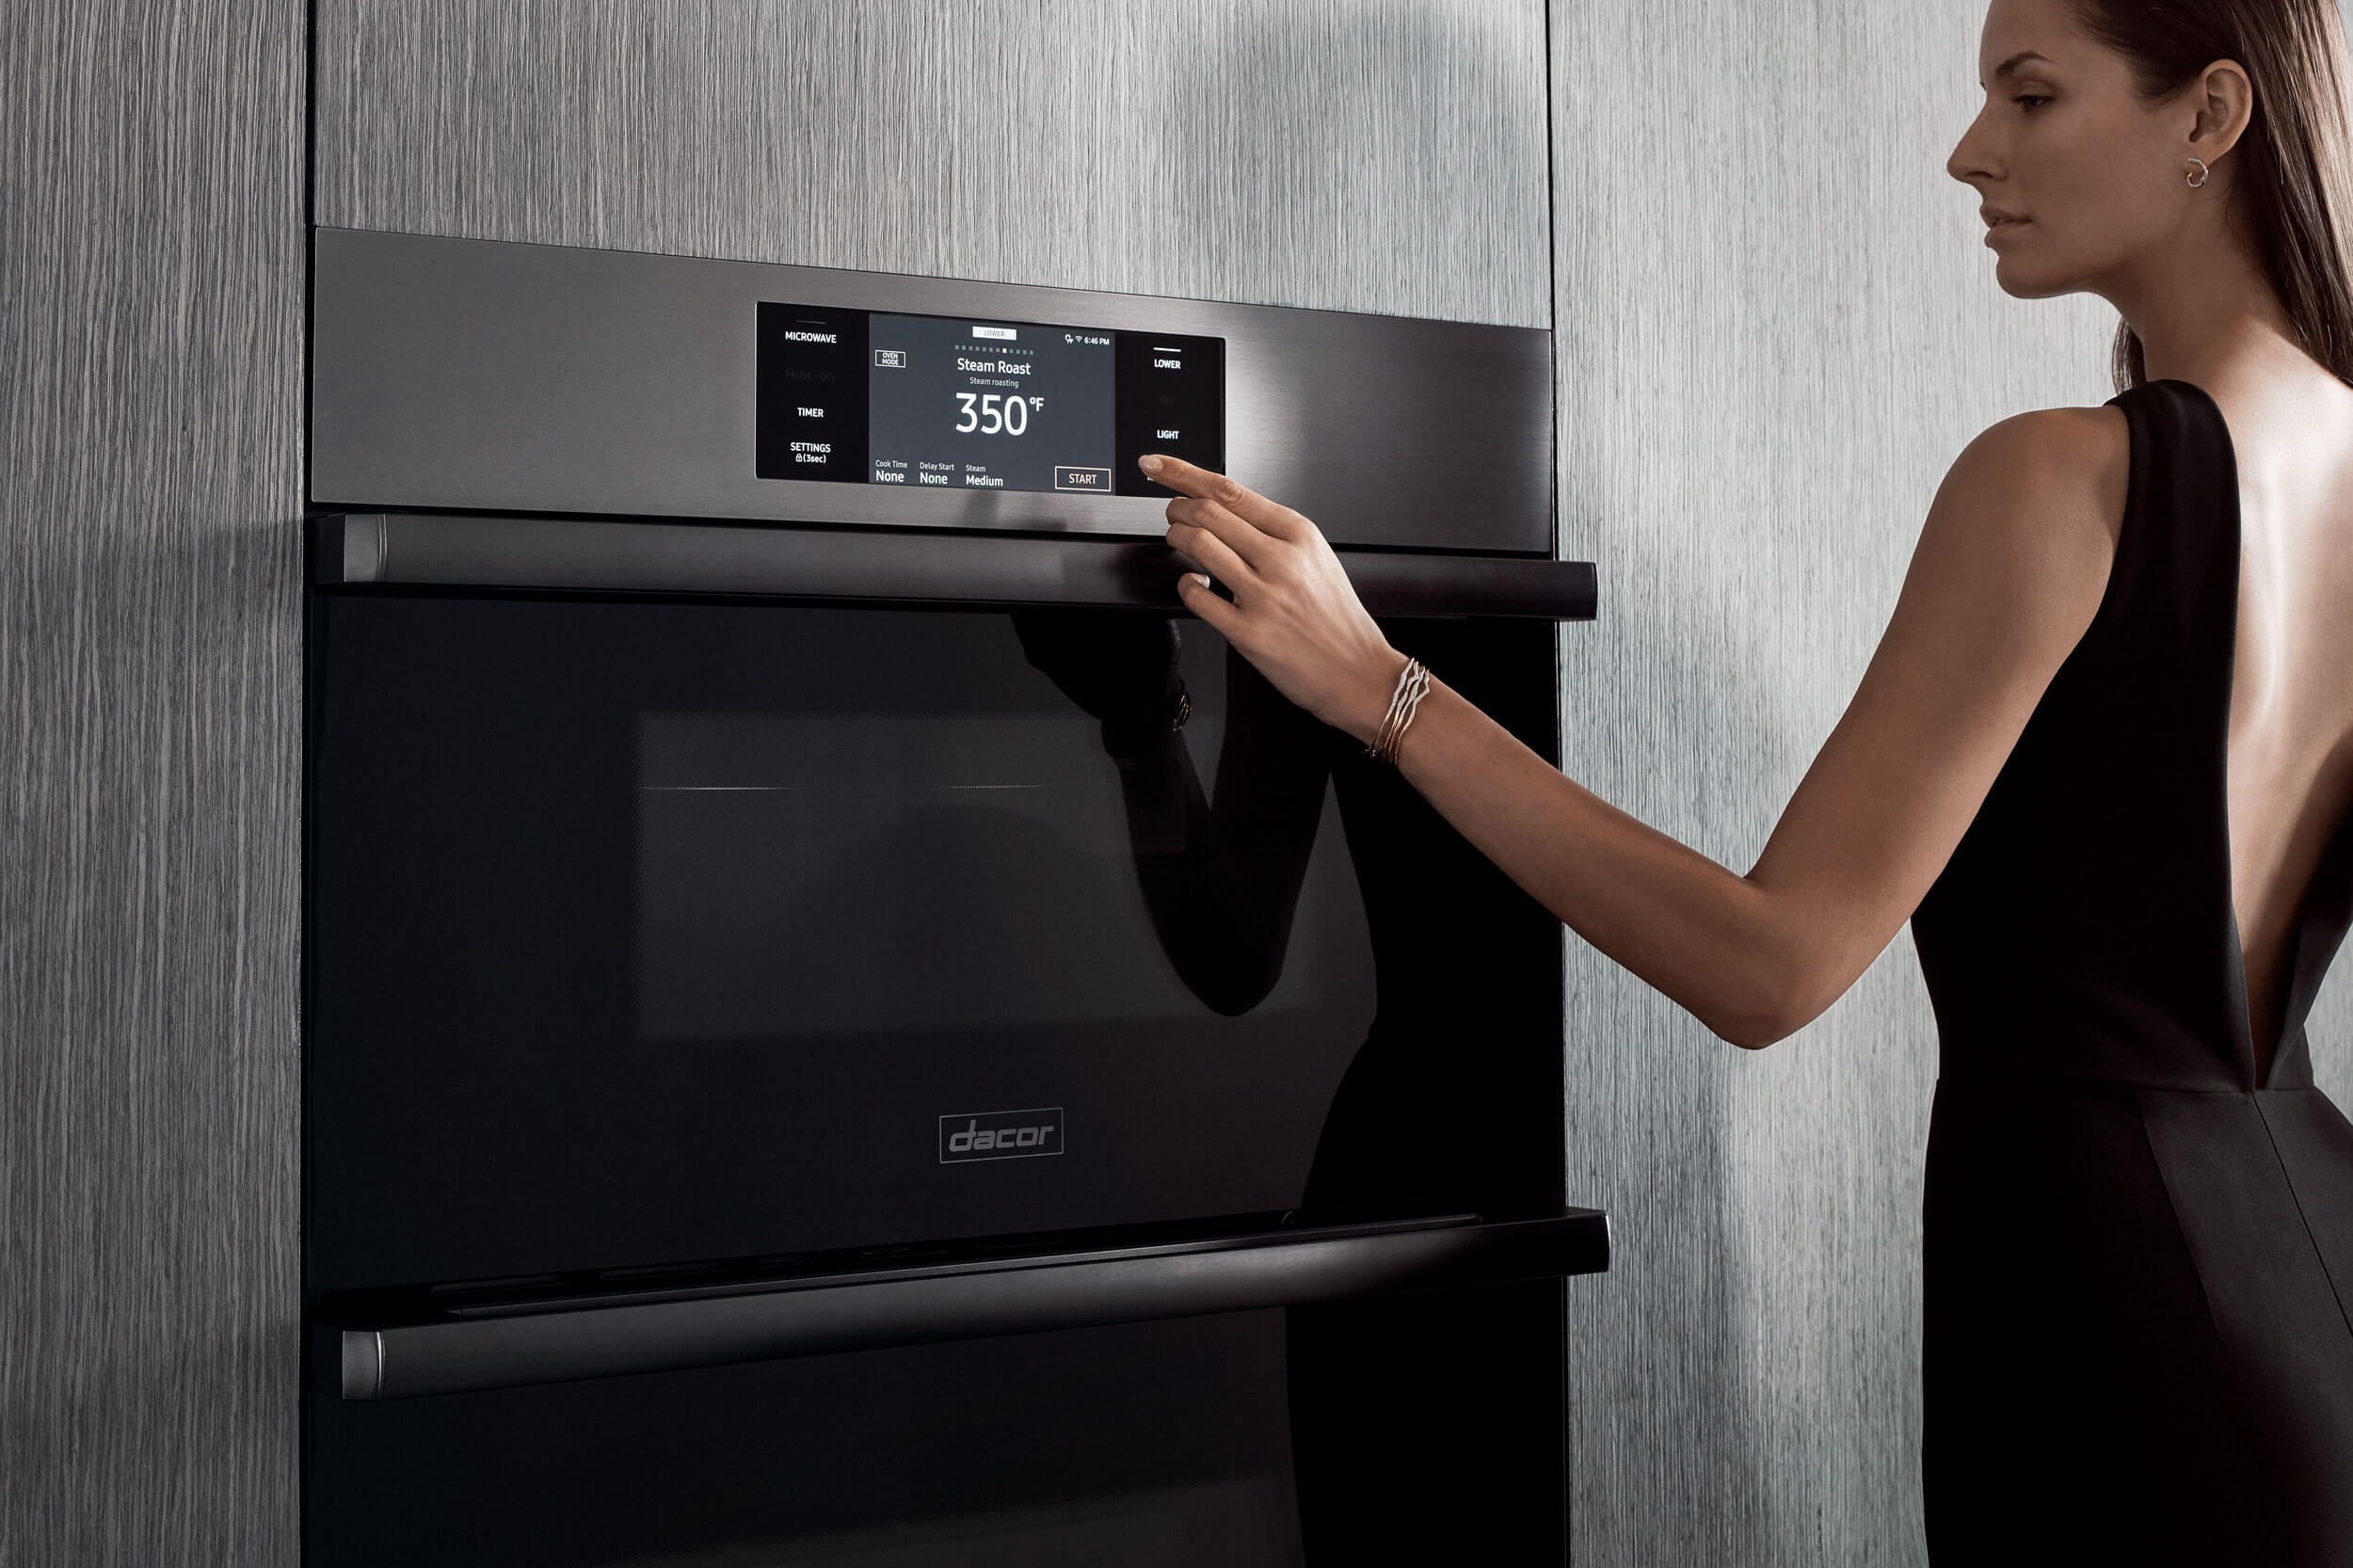 It's time to remodel the kitchen with Dacor appliances.